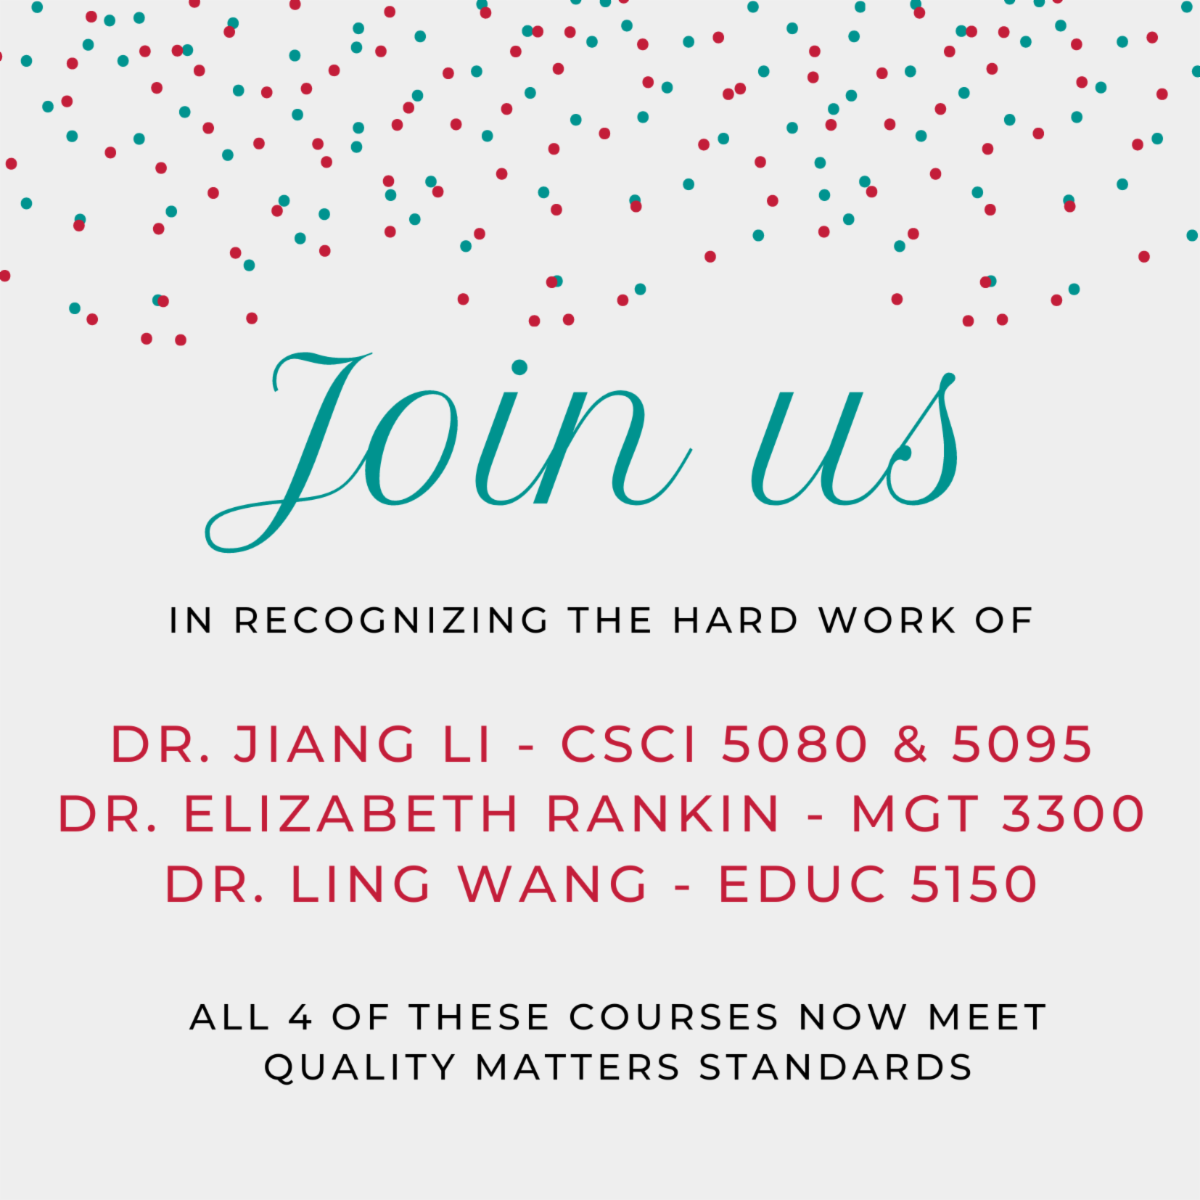 Join us in recognizing the hard work of Doctors Jiang Li Elizabeth Rankin and Ling Wang